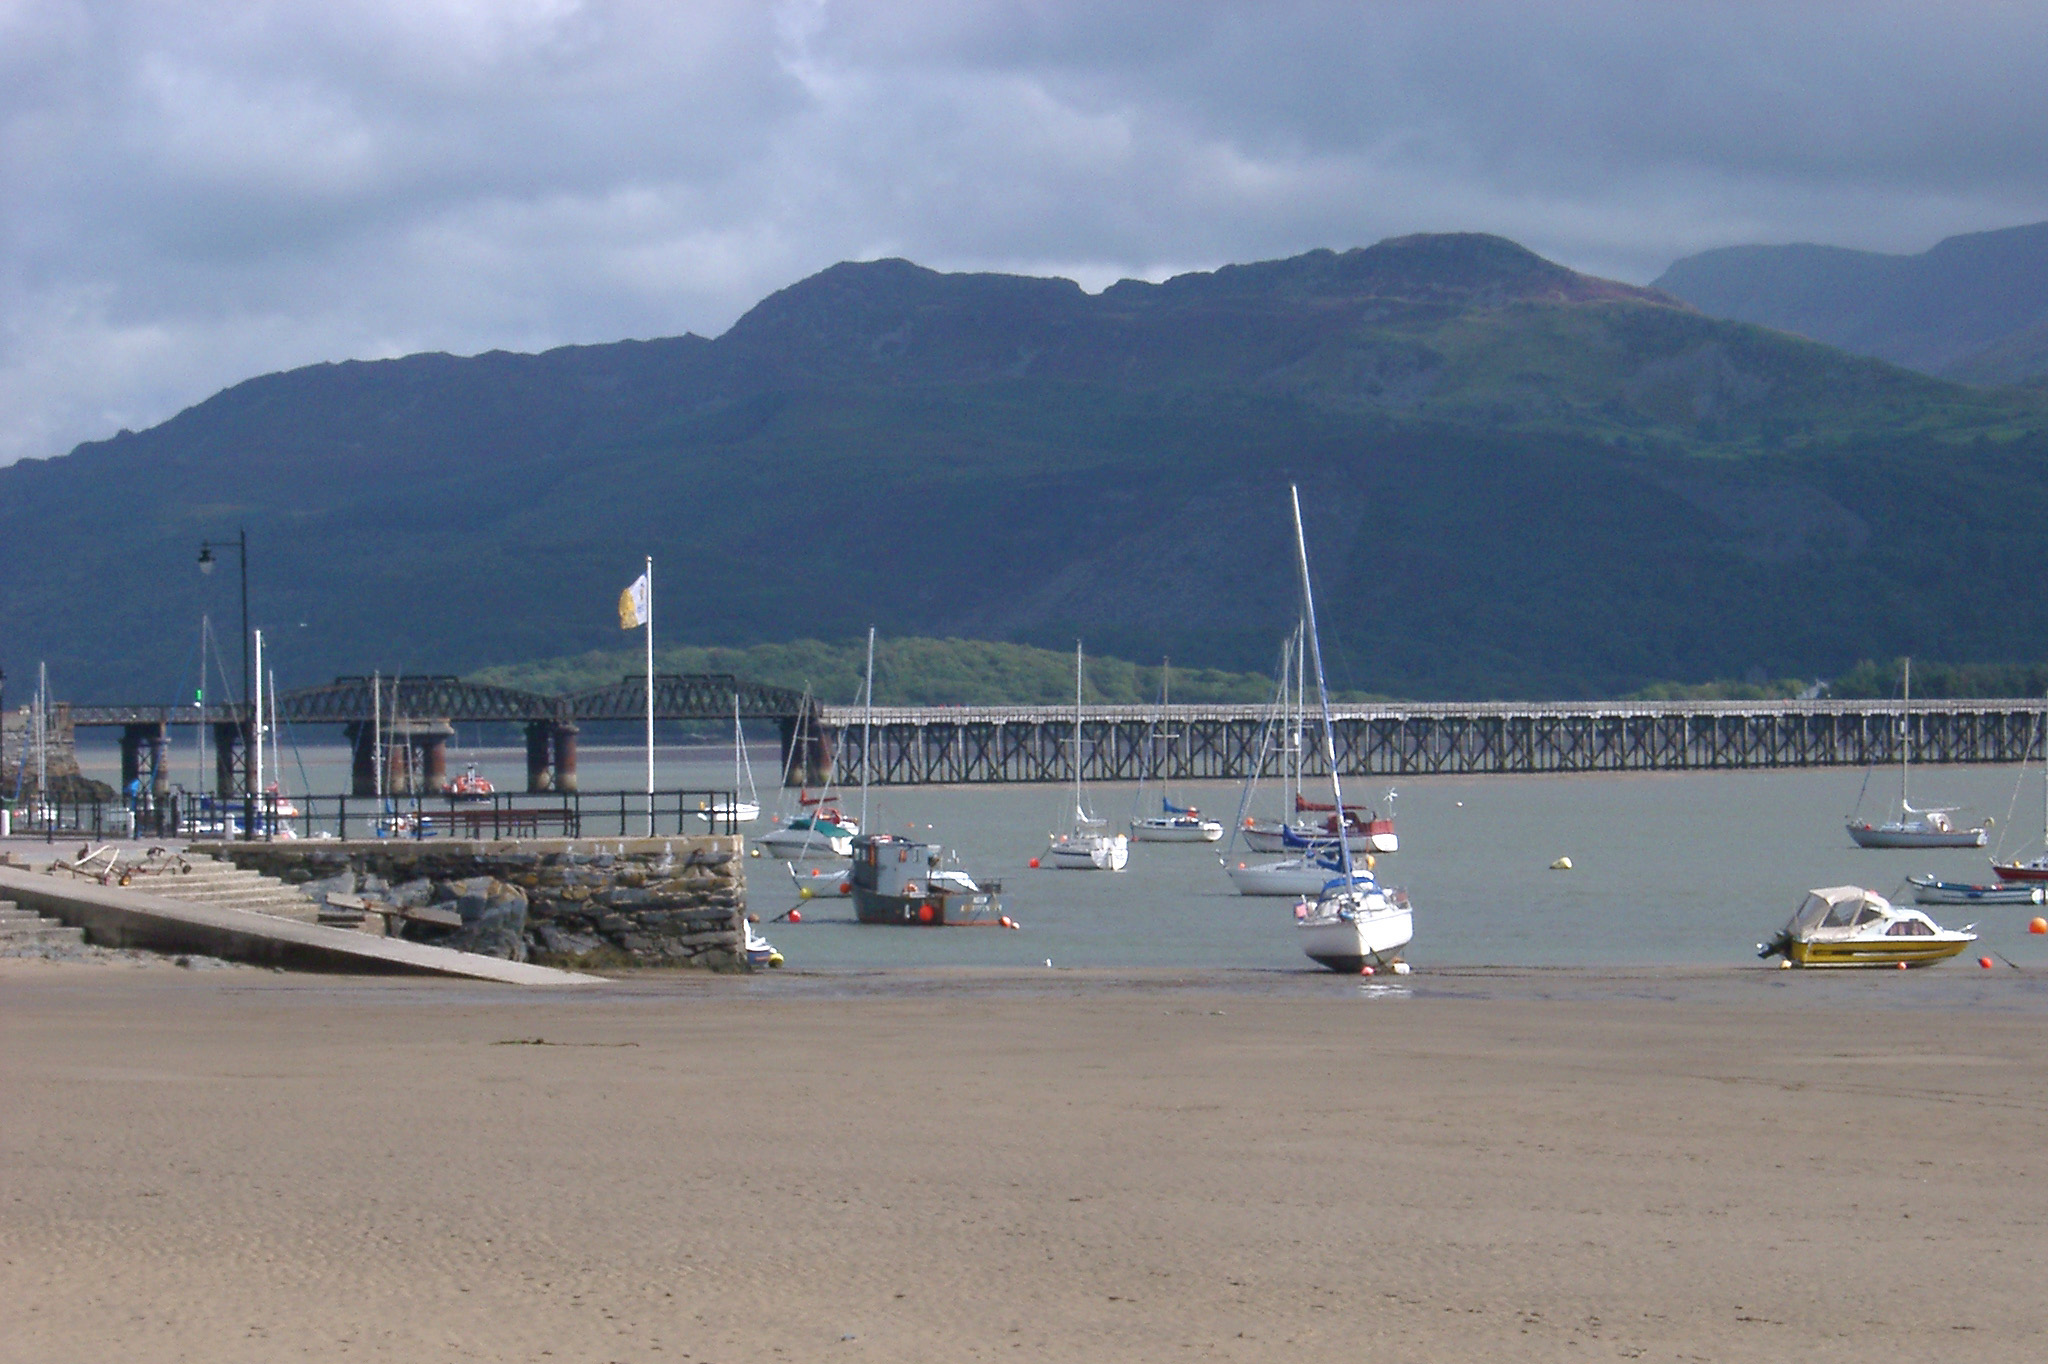 Barmouth rail viaduct with small fishing and pleasure boats moored in the sheltered harbour in the foreground